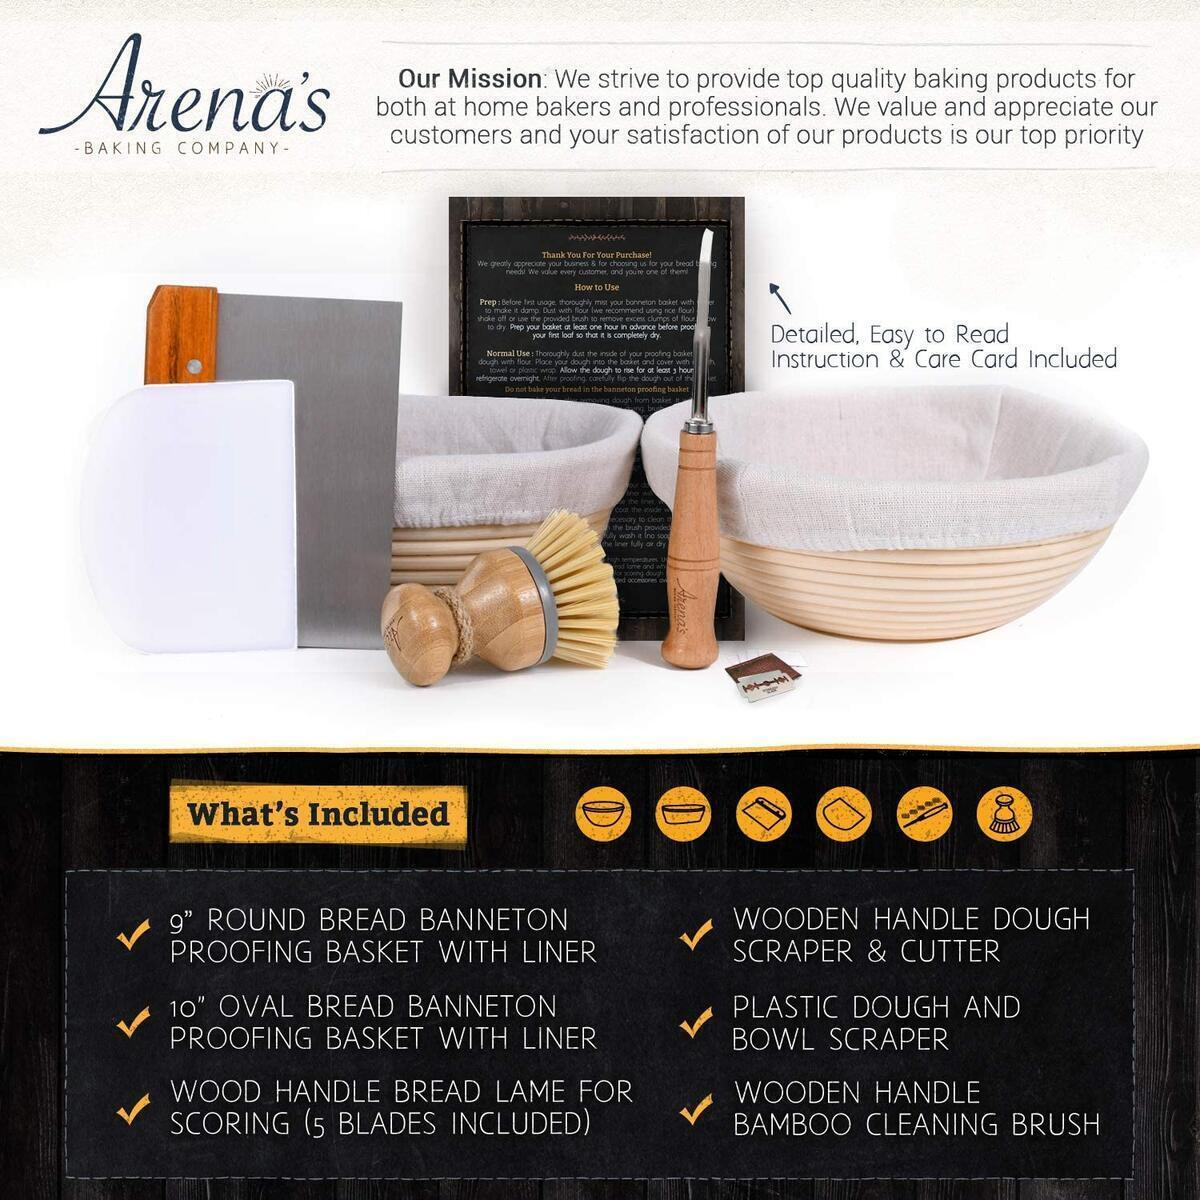 Sourdough Proofing Basket Kit Bread Baking Proofing Basket Set Includes Oval and Round Baskets, Liners, Metal Dough Cutter, Lame Bread Tool, Extra Blades, Bowl Scraper, Bamboo Cleaning Brush  & 15 Recipe Ebook